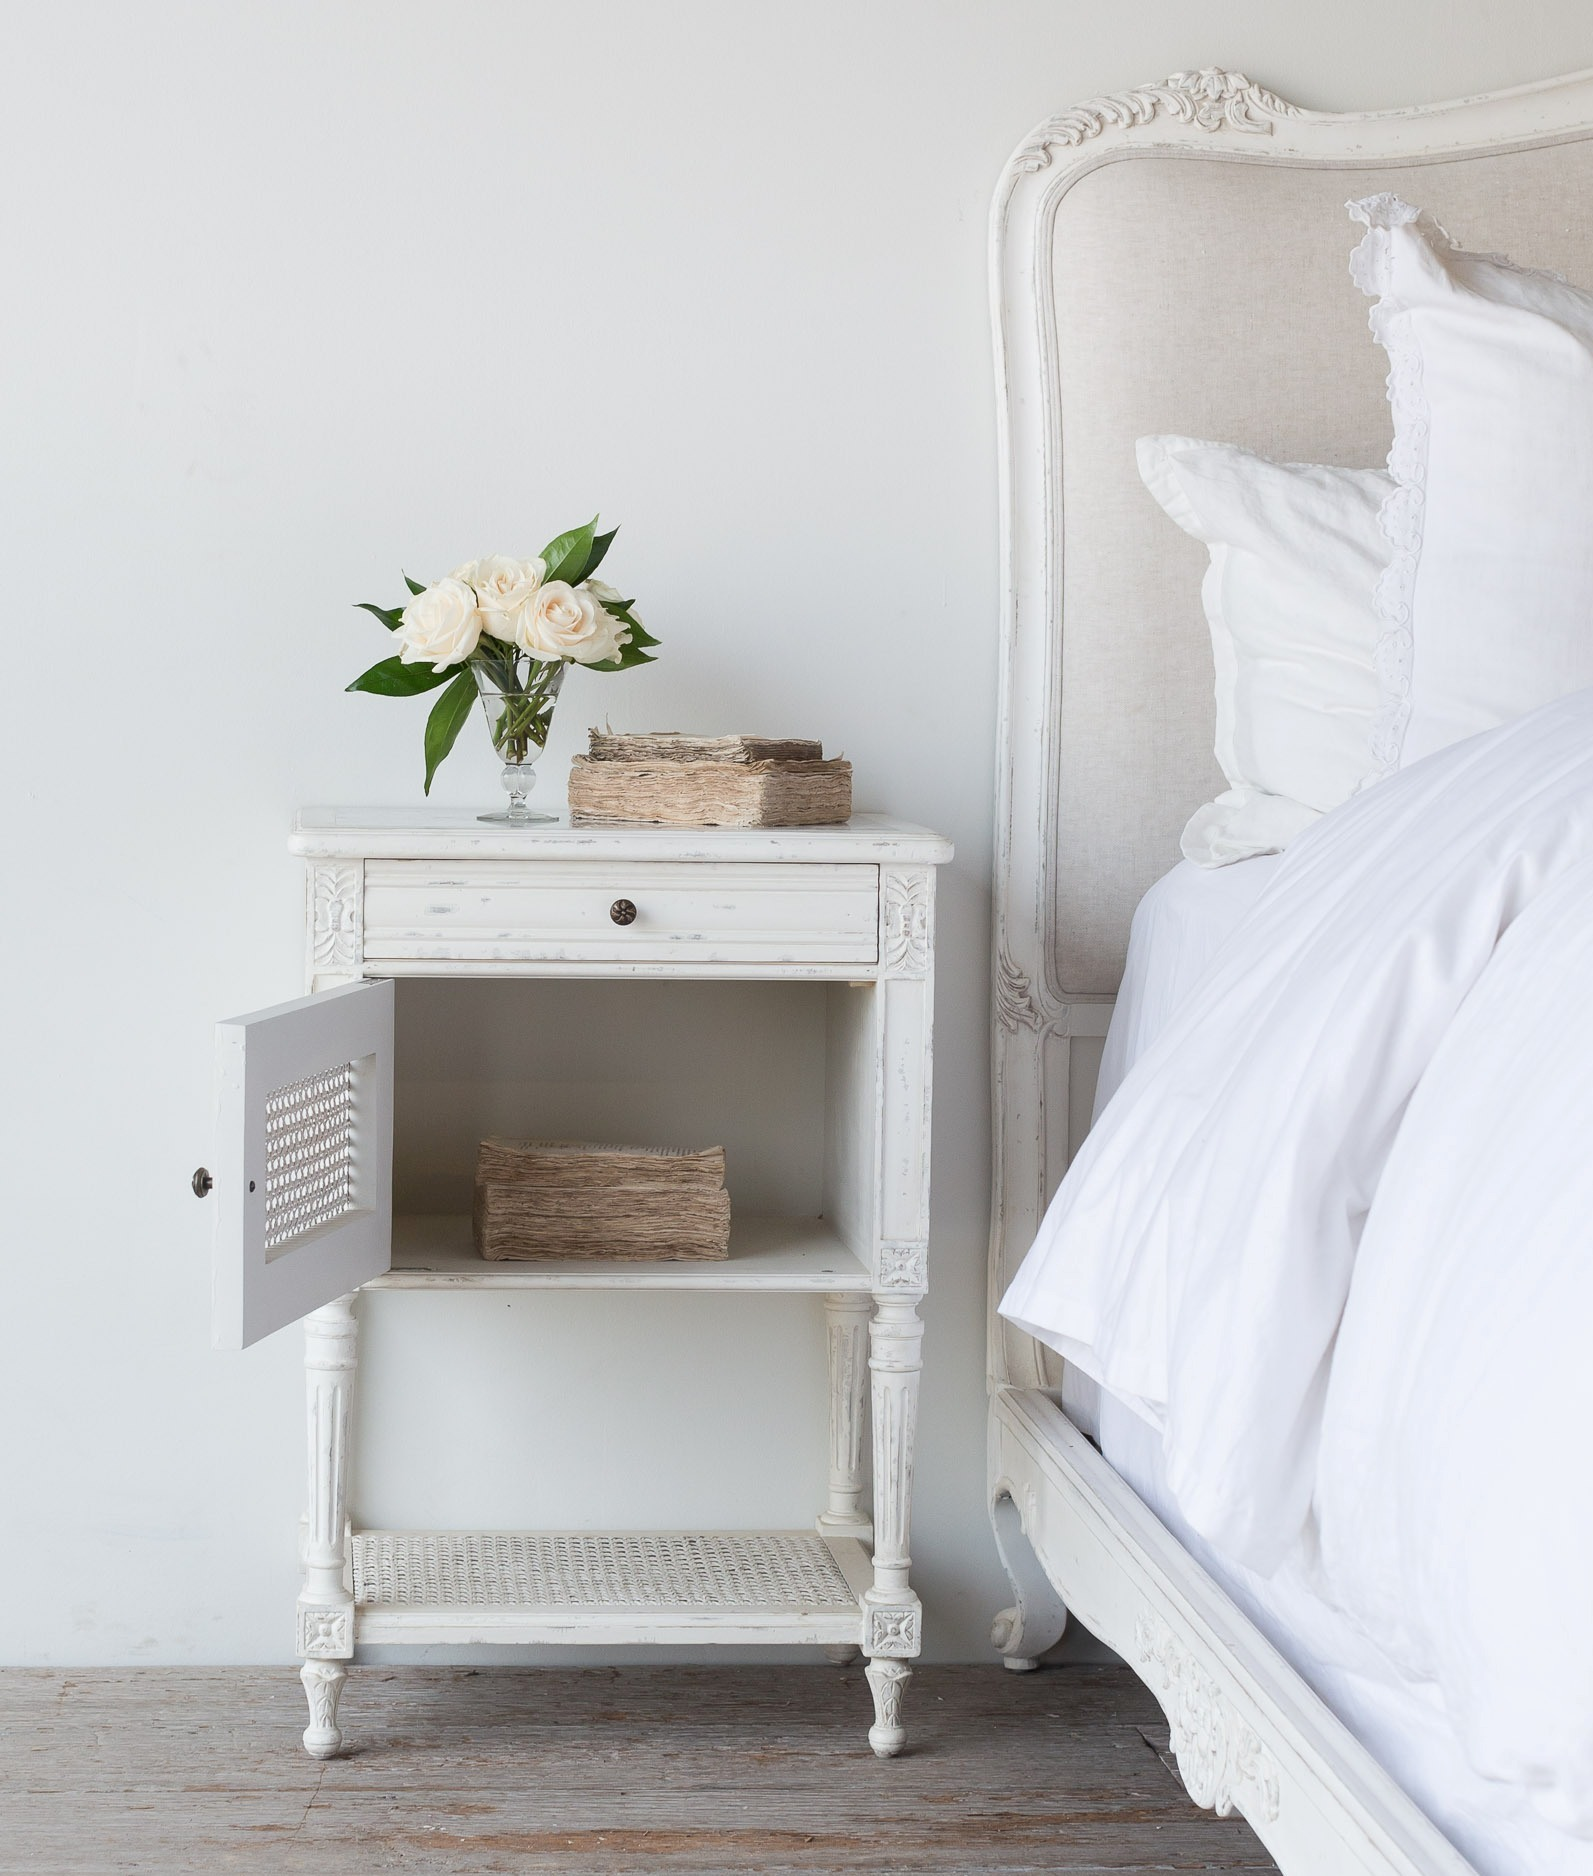 1 Door And 1 Drawer Wooden Bed Side